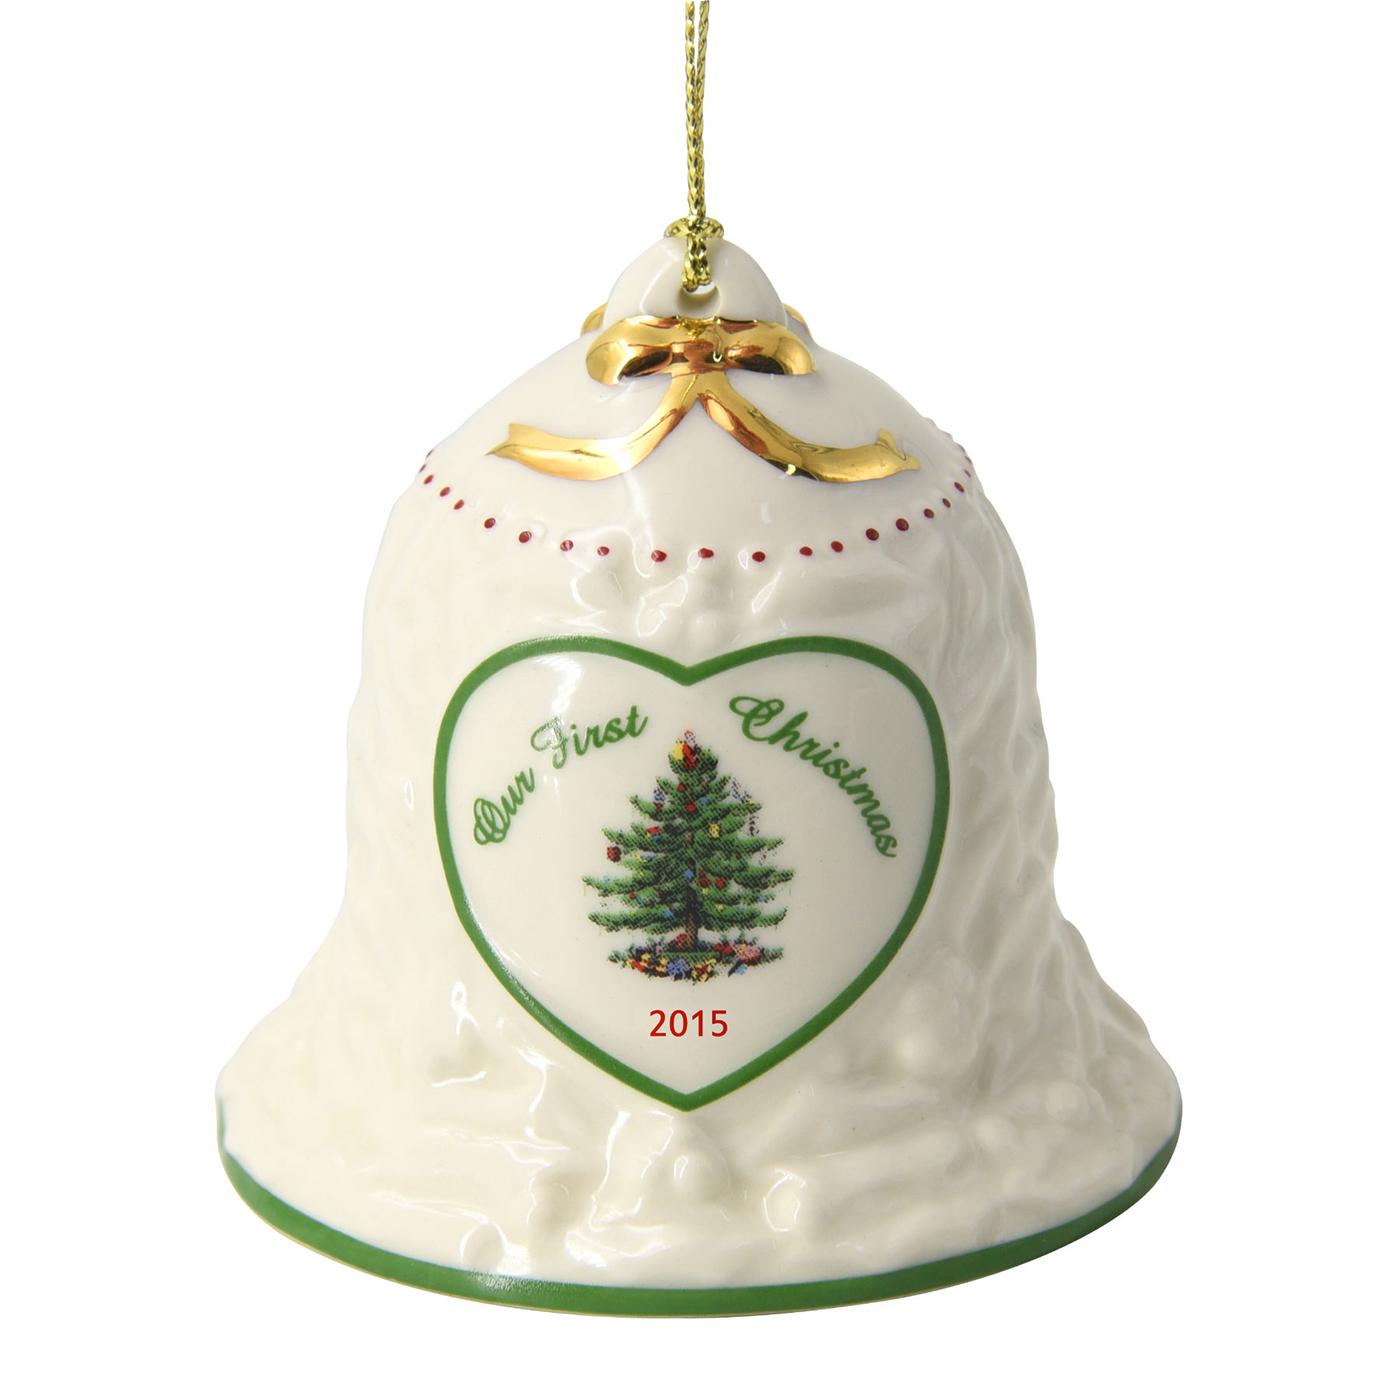 Christmas tree our first bell ornament by spode